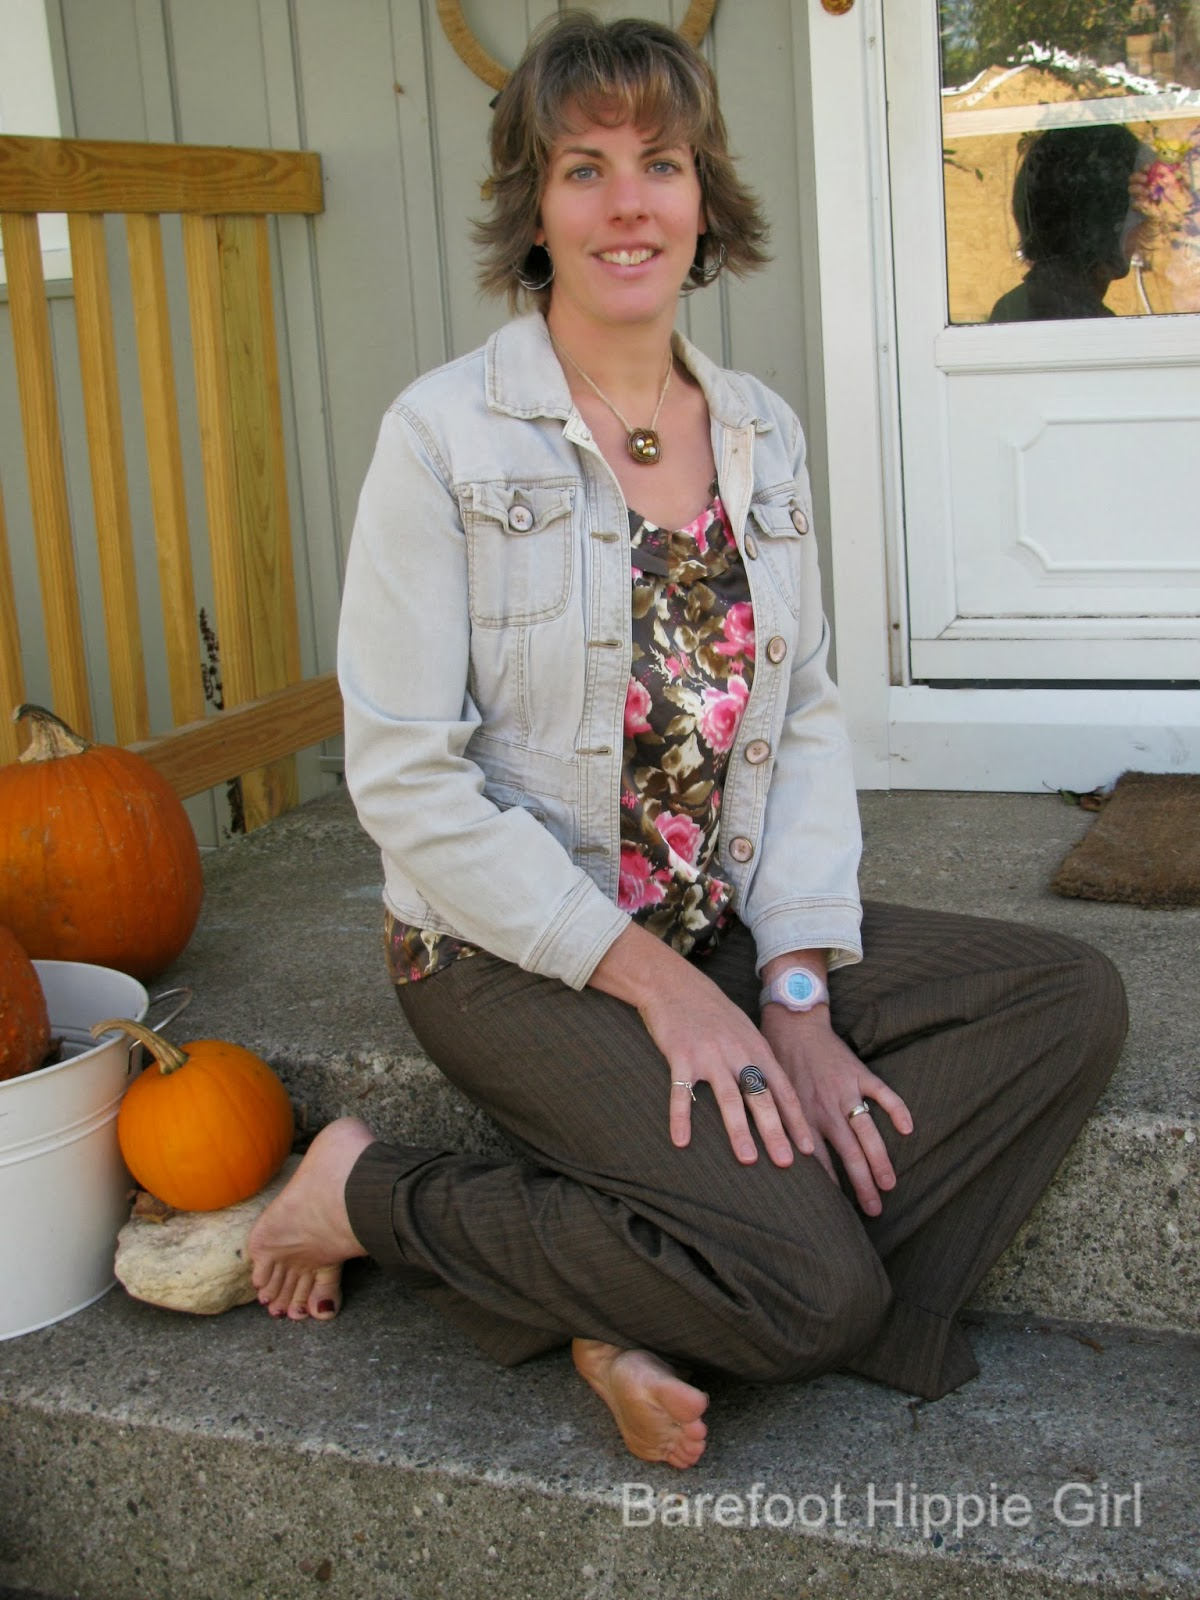 Barefoot Hippie Girl Embracing 2013 Fall Fashion Trends